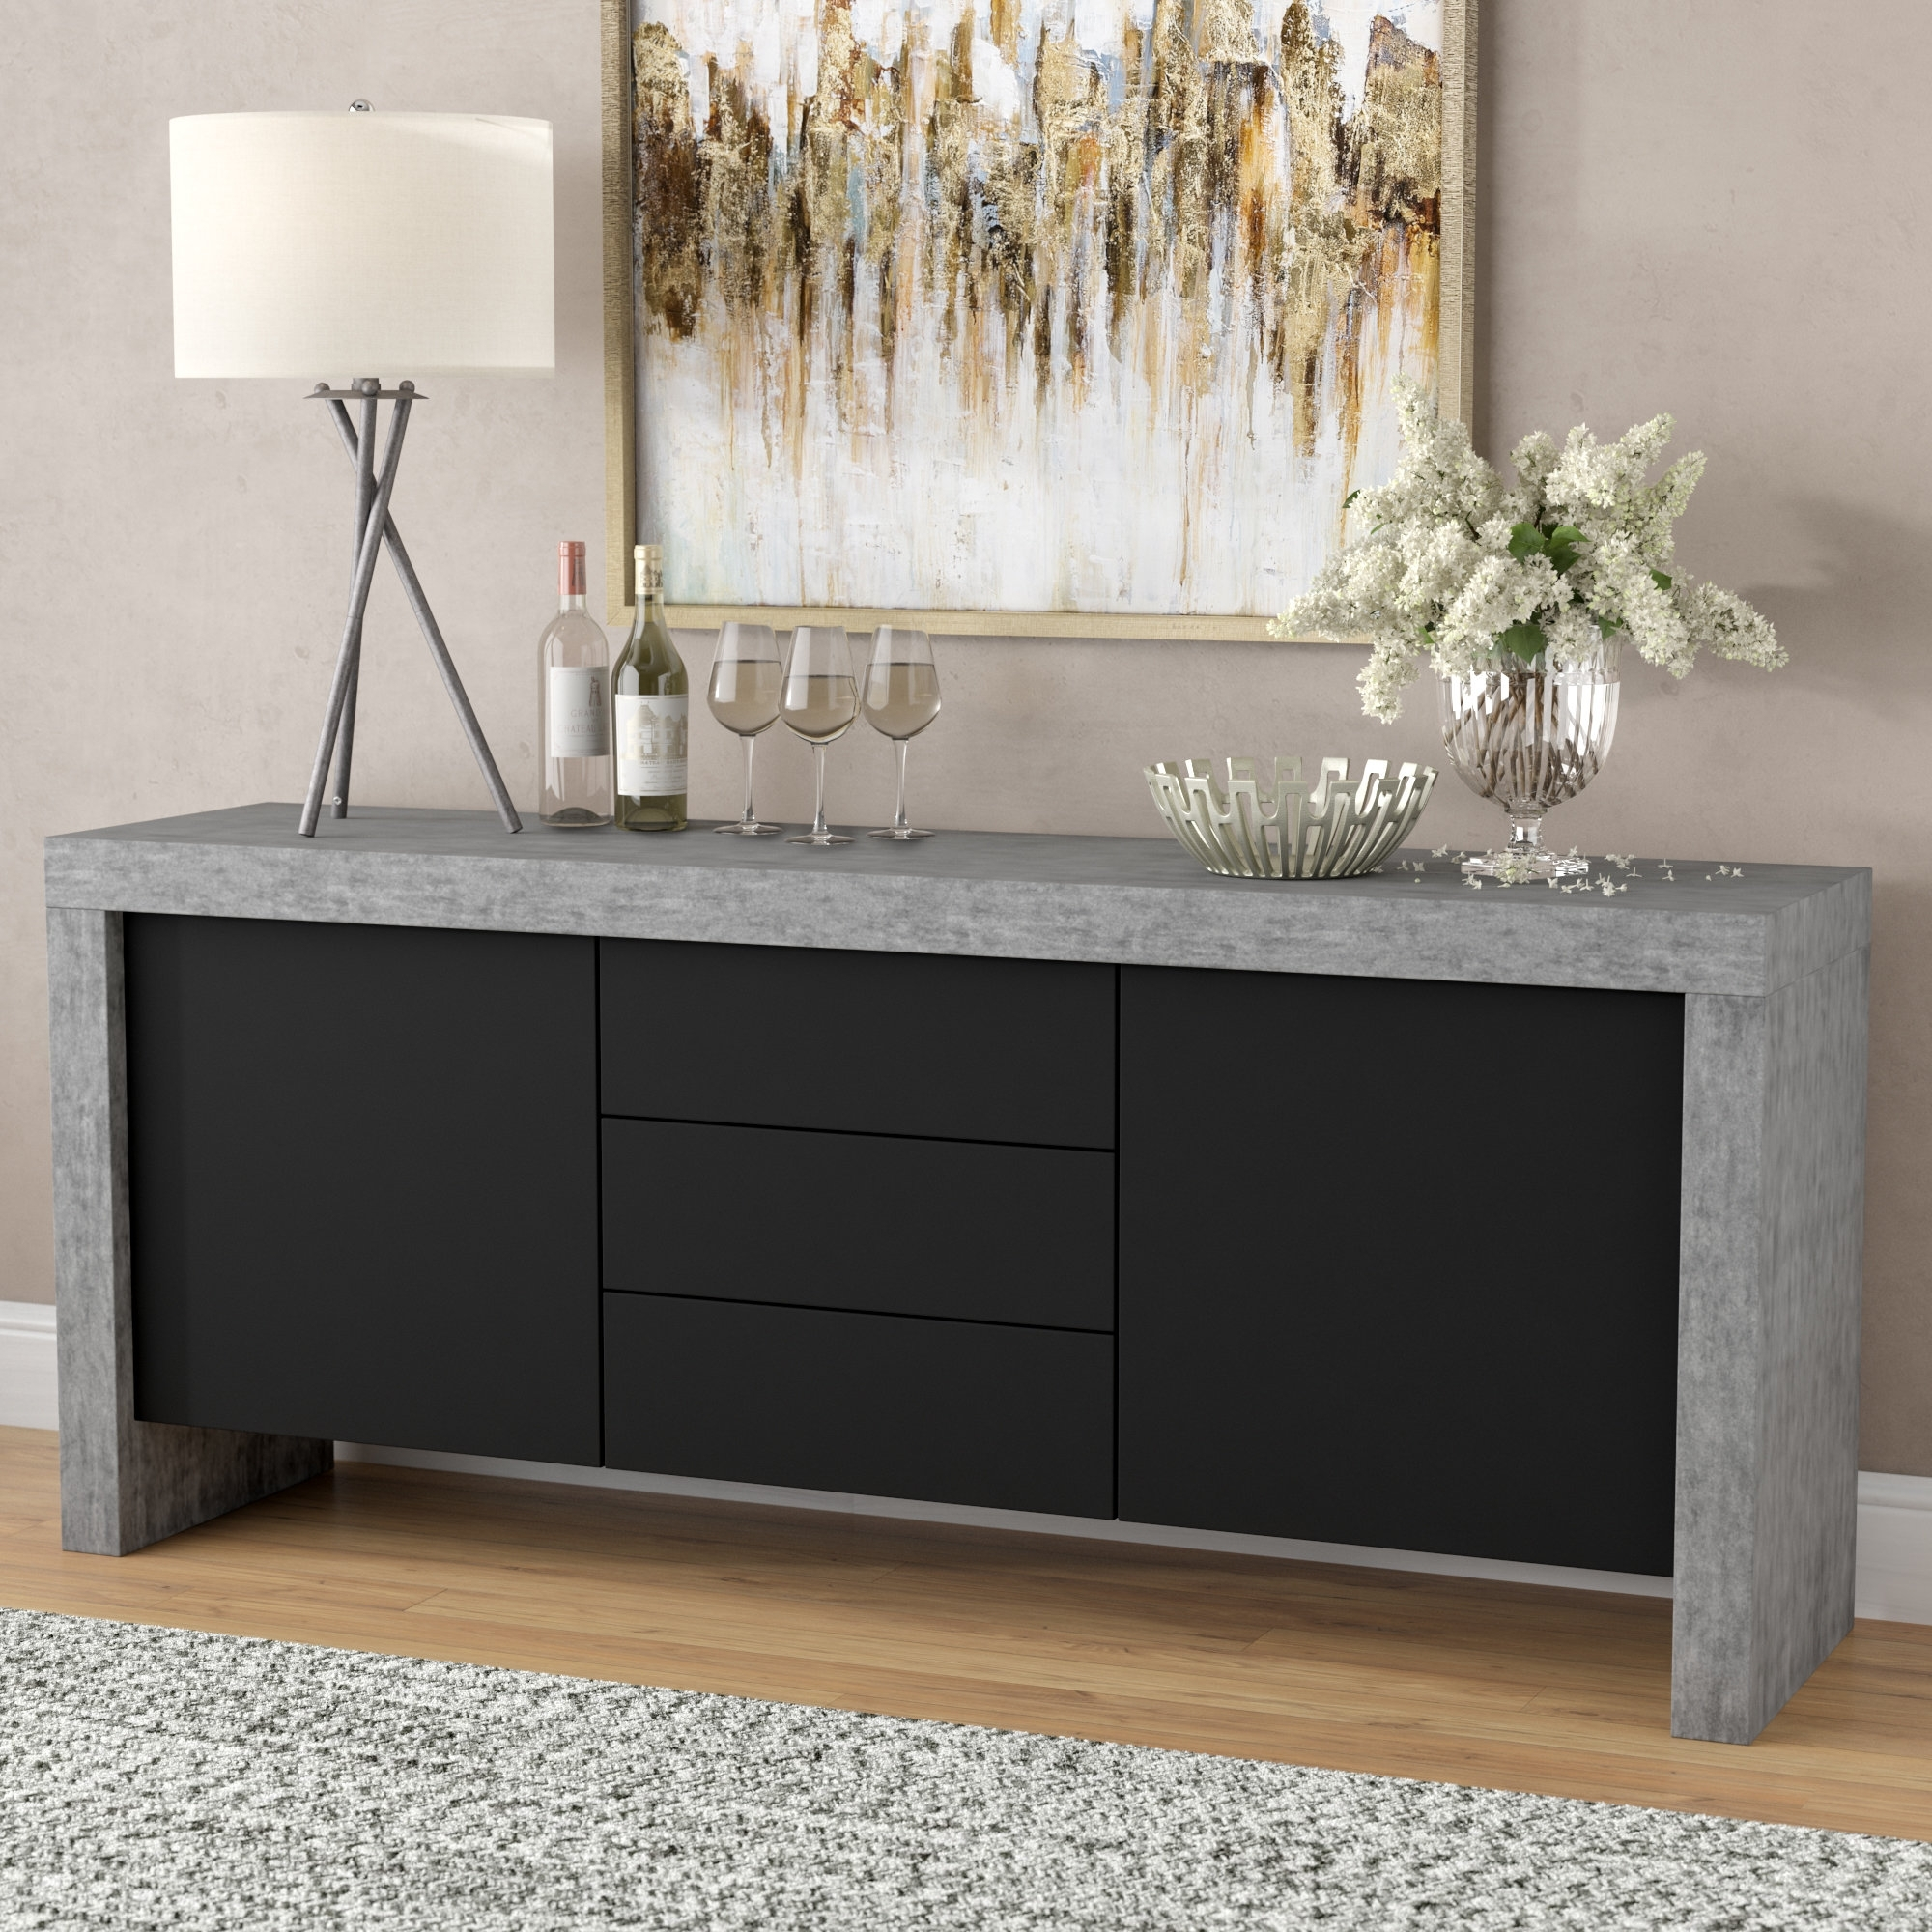 Wade Logan Cosette 2 Door Sideboard & Reviews | Wayfair pertaining to 2-Door Mirror Front Sideboards (Image 30 of 30)